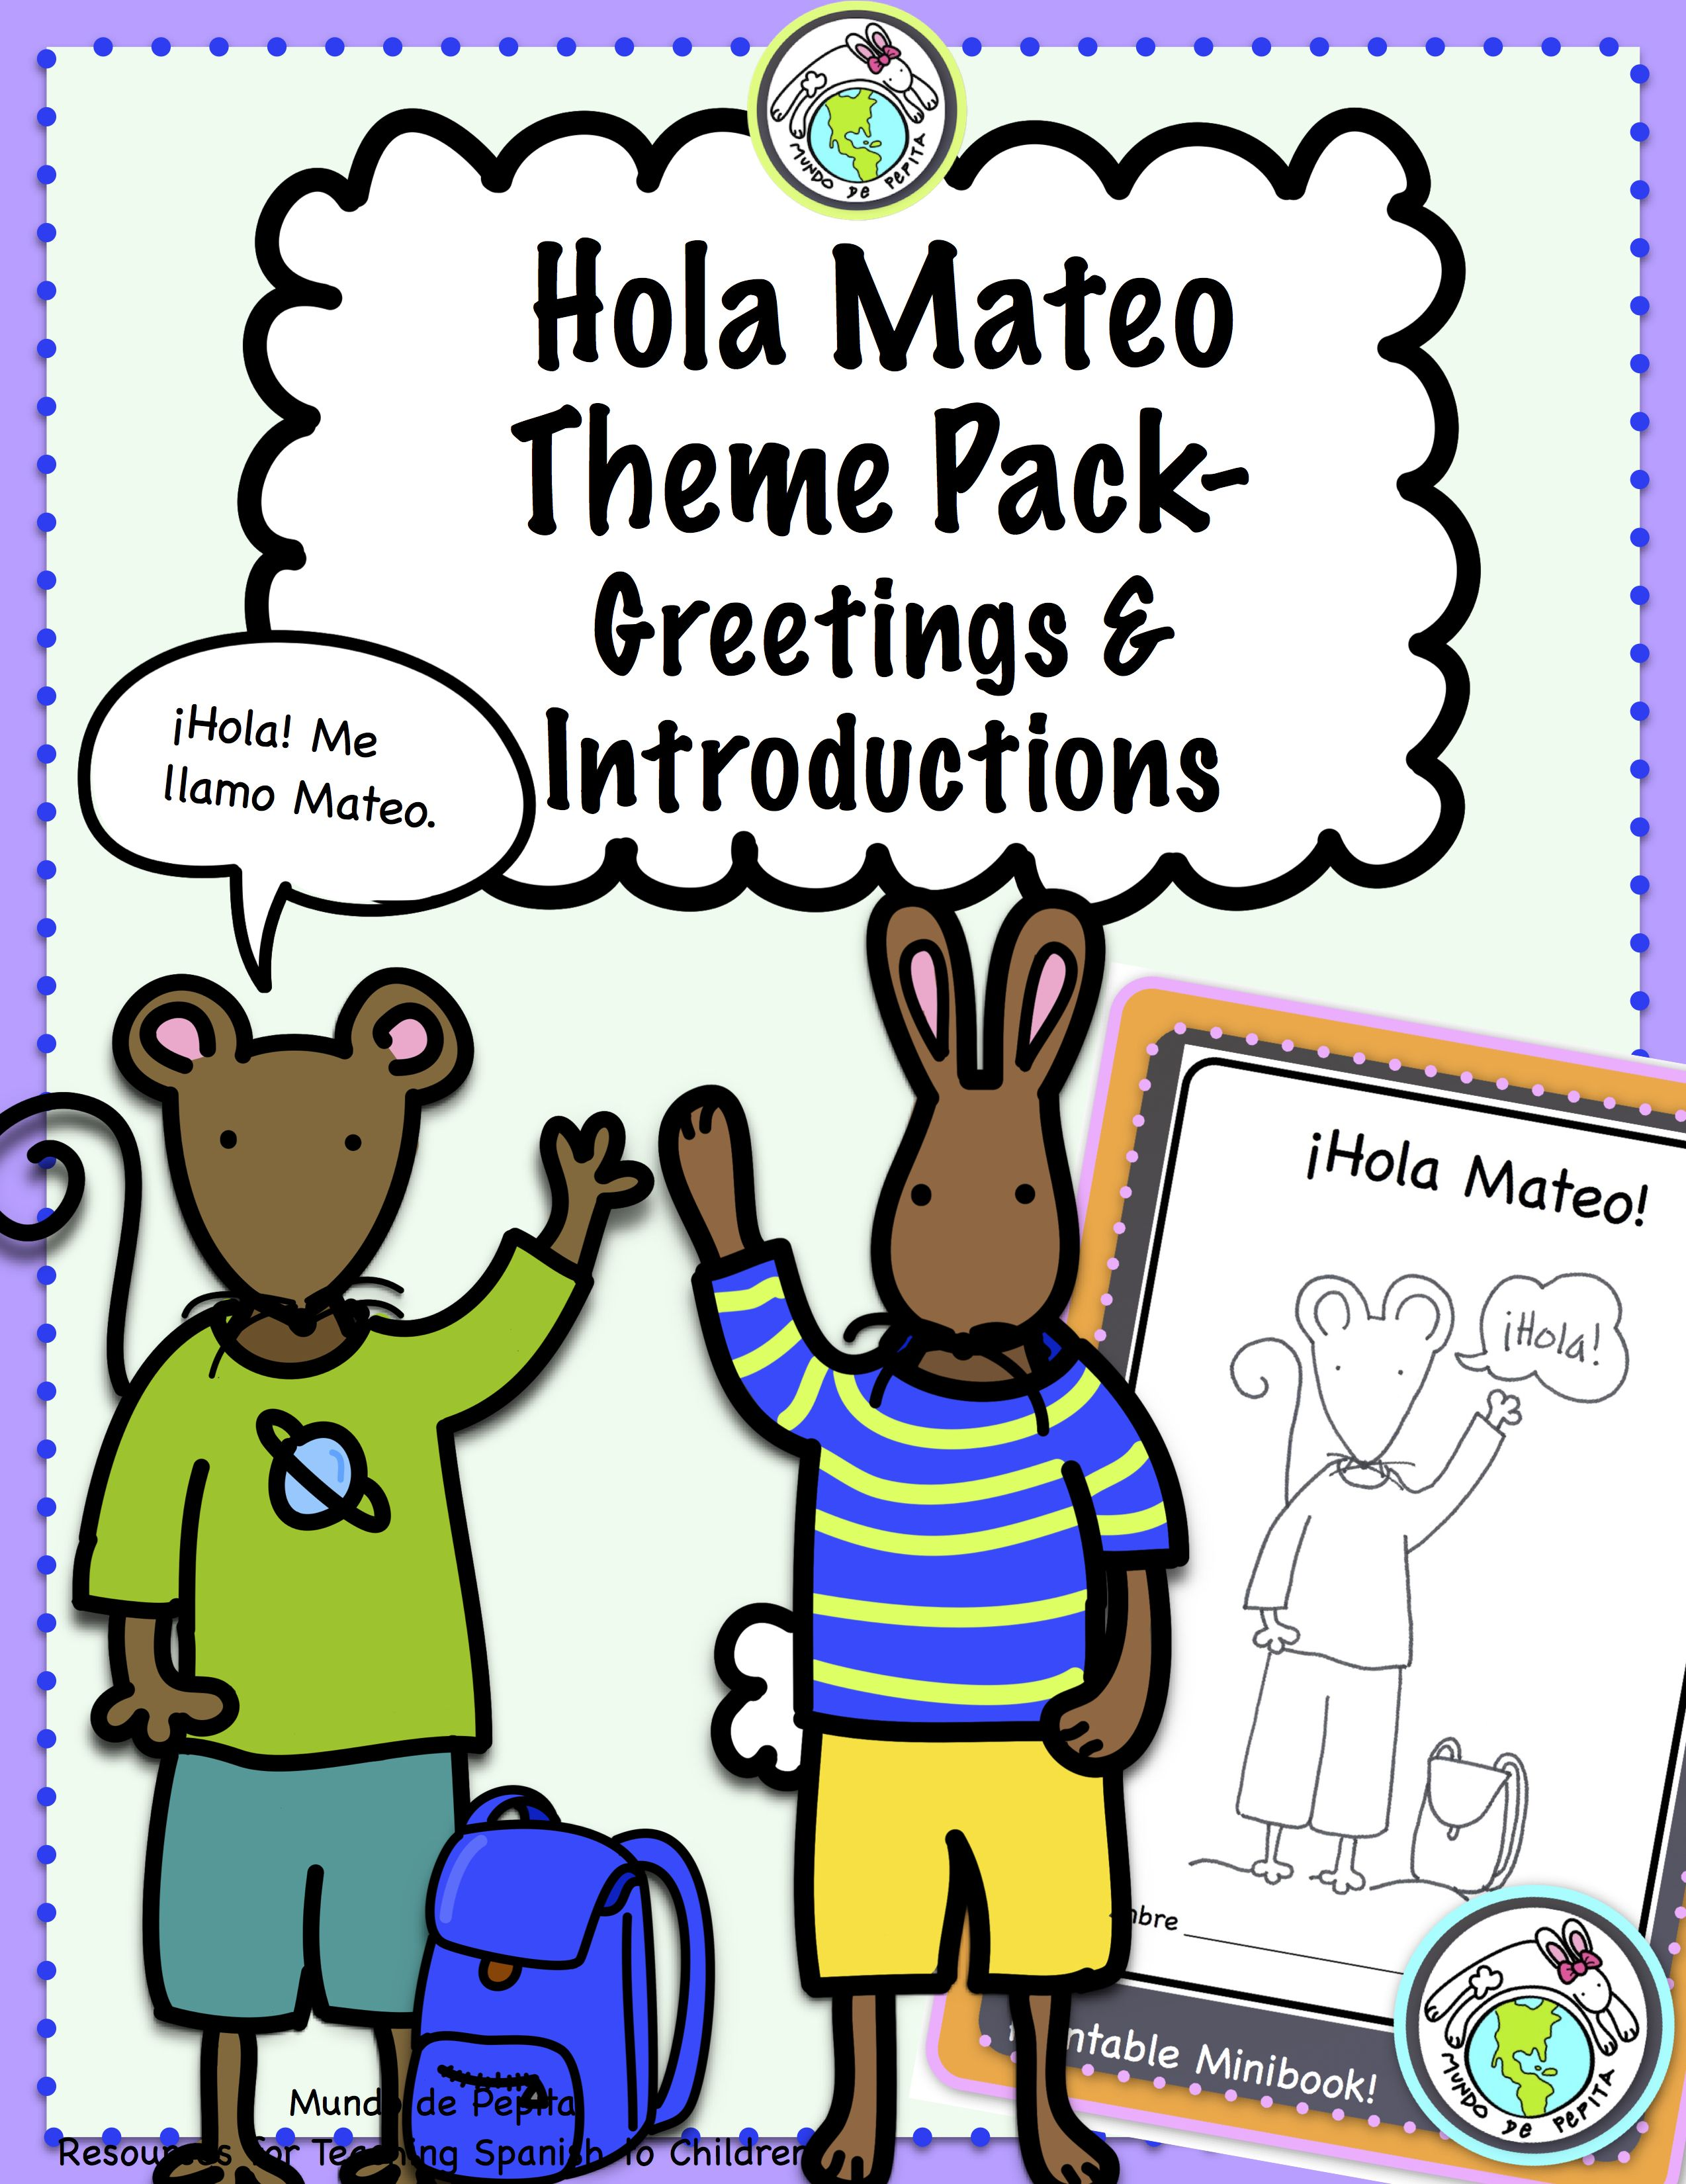 Hola Mateo Theme Pack For Spanish Greetings